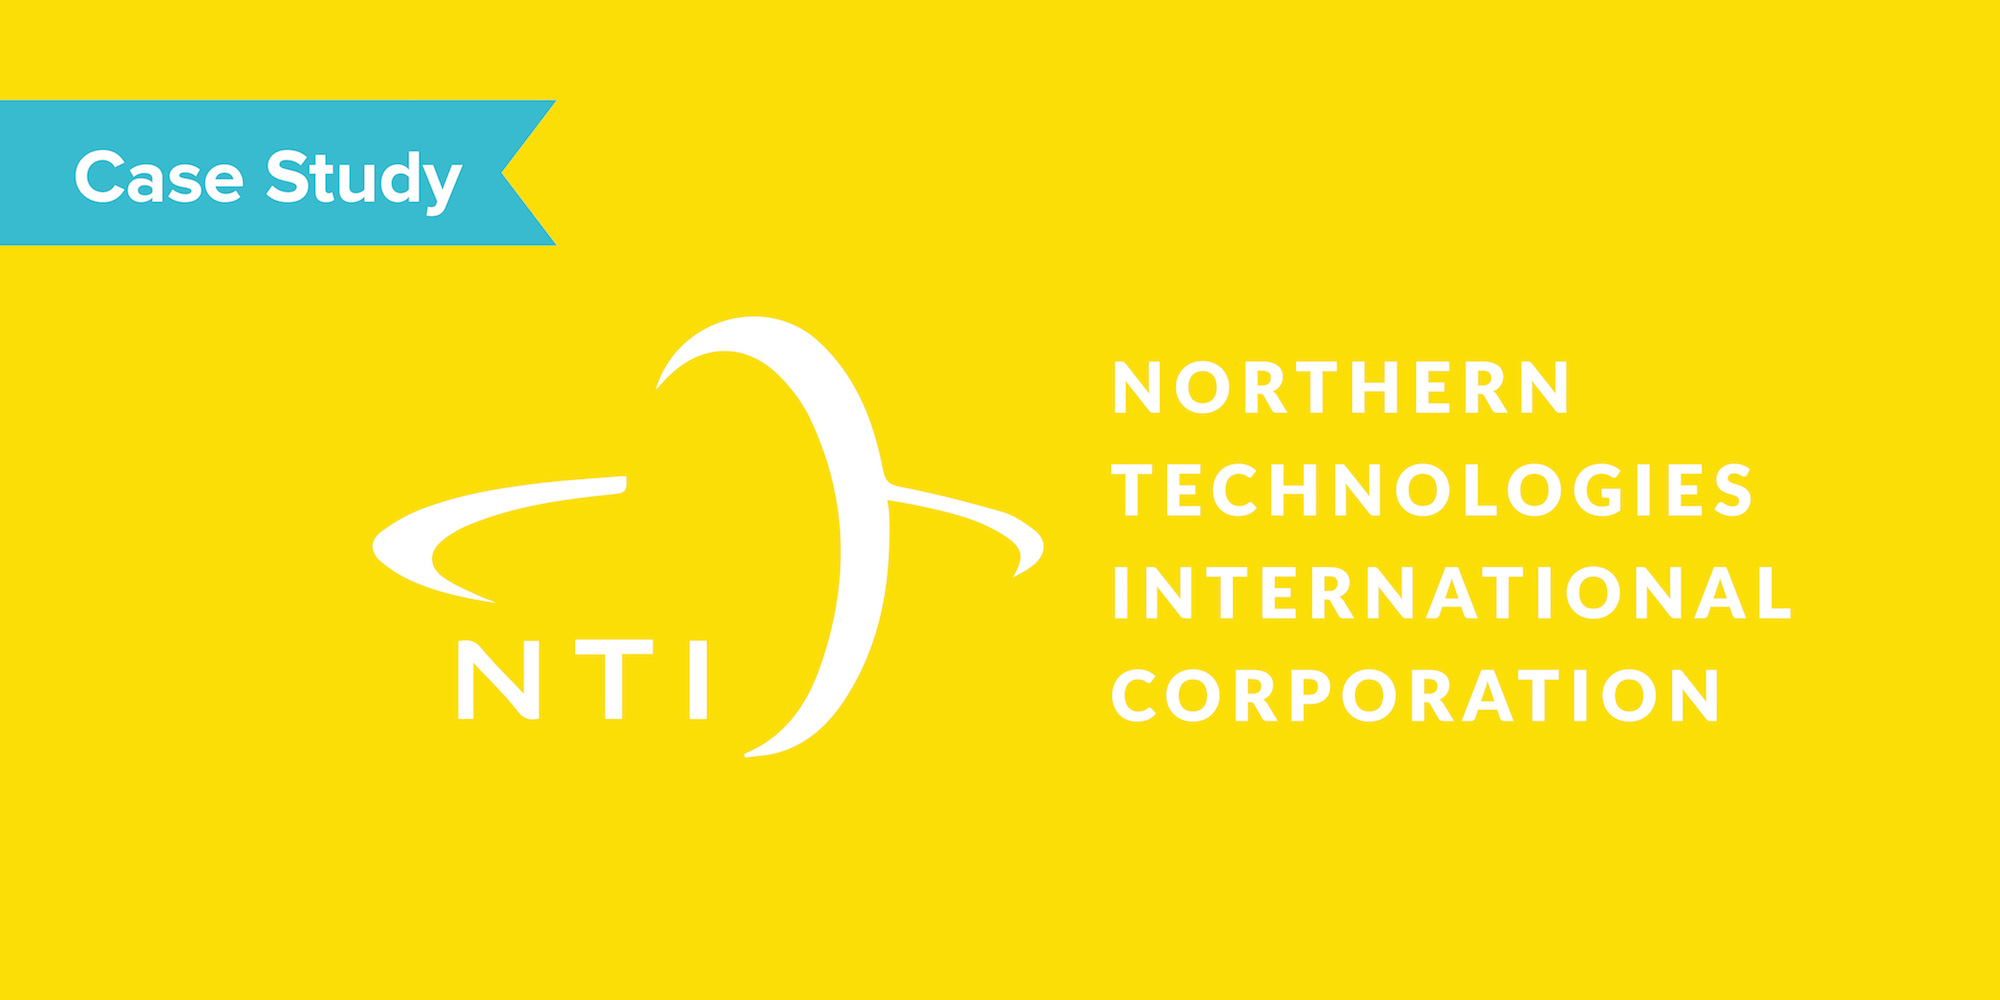 Northern Technologies International Corporation